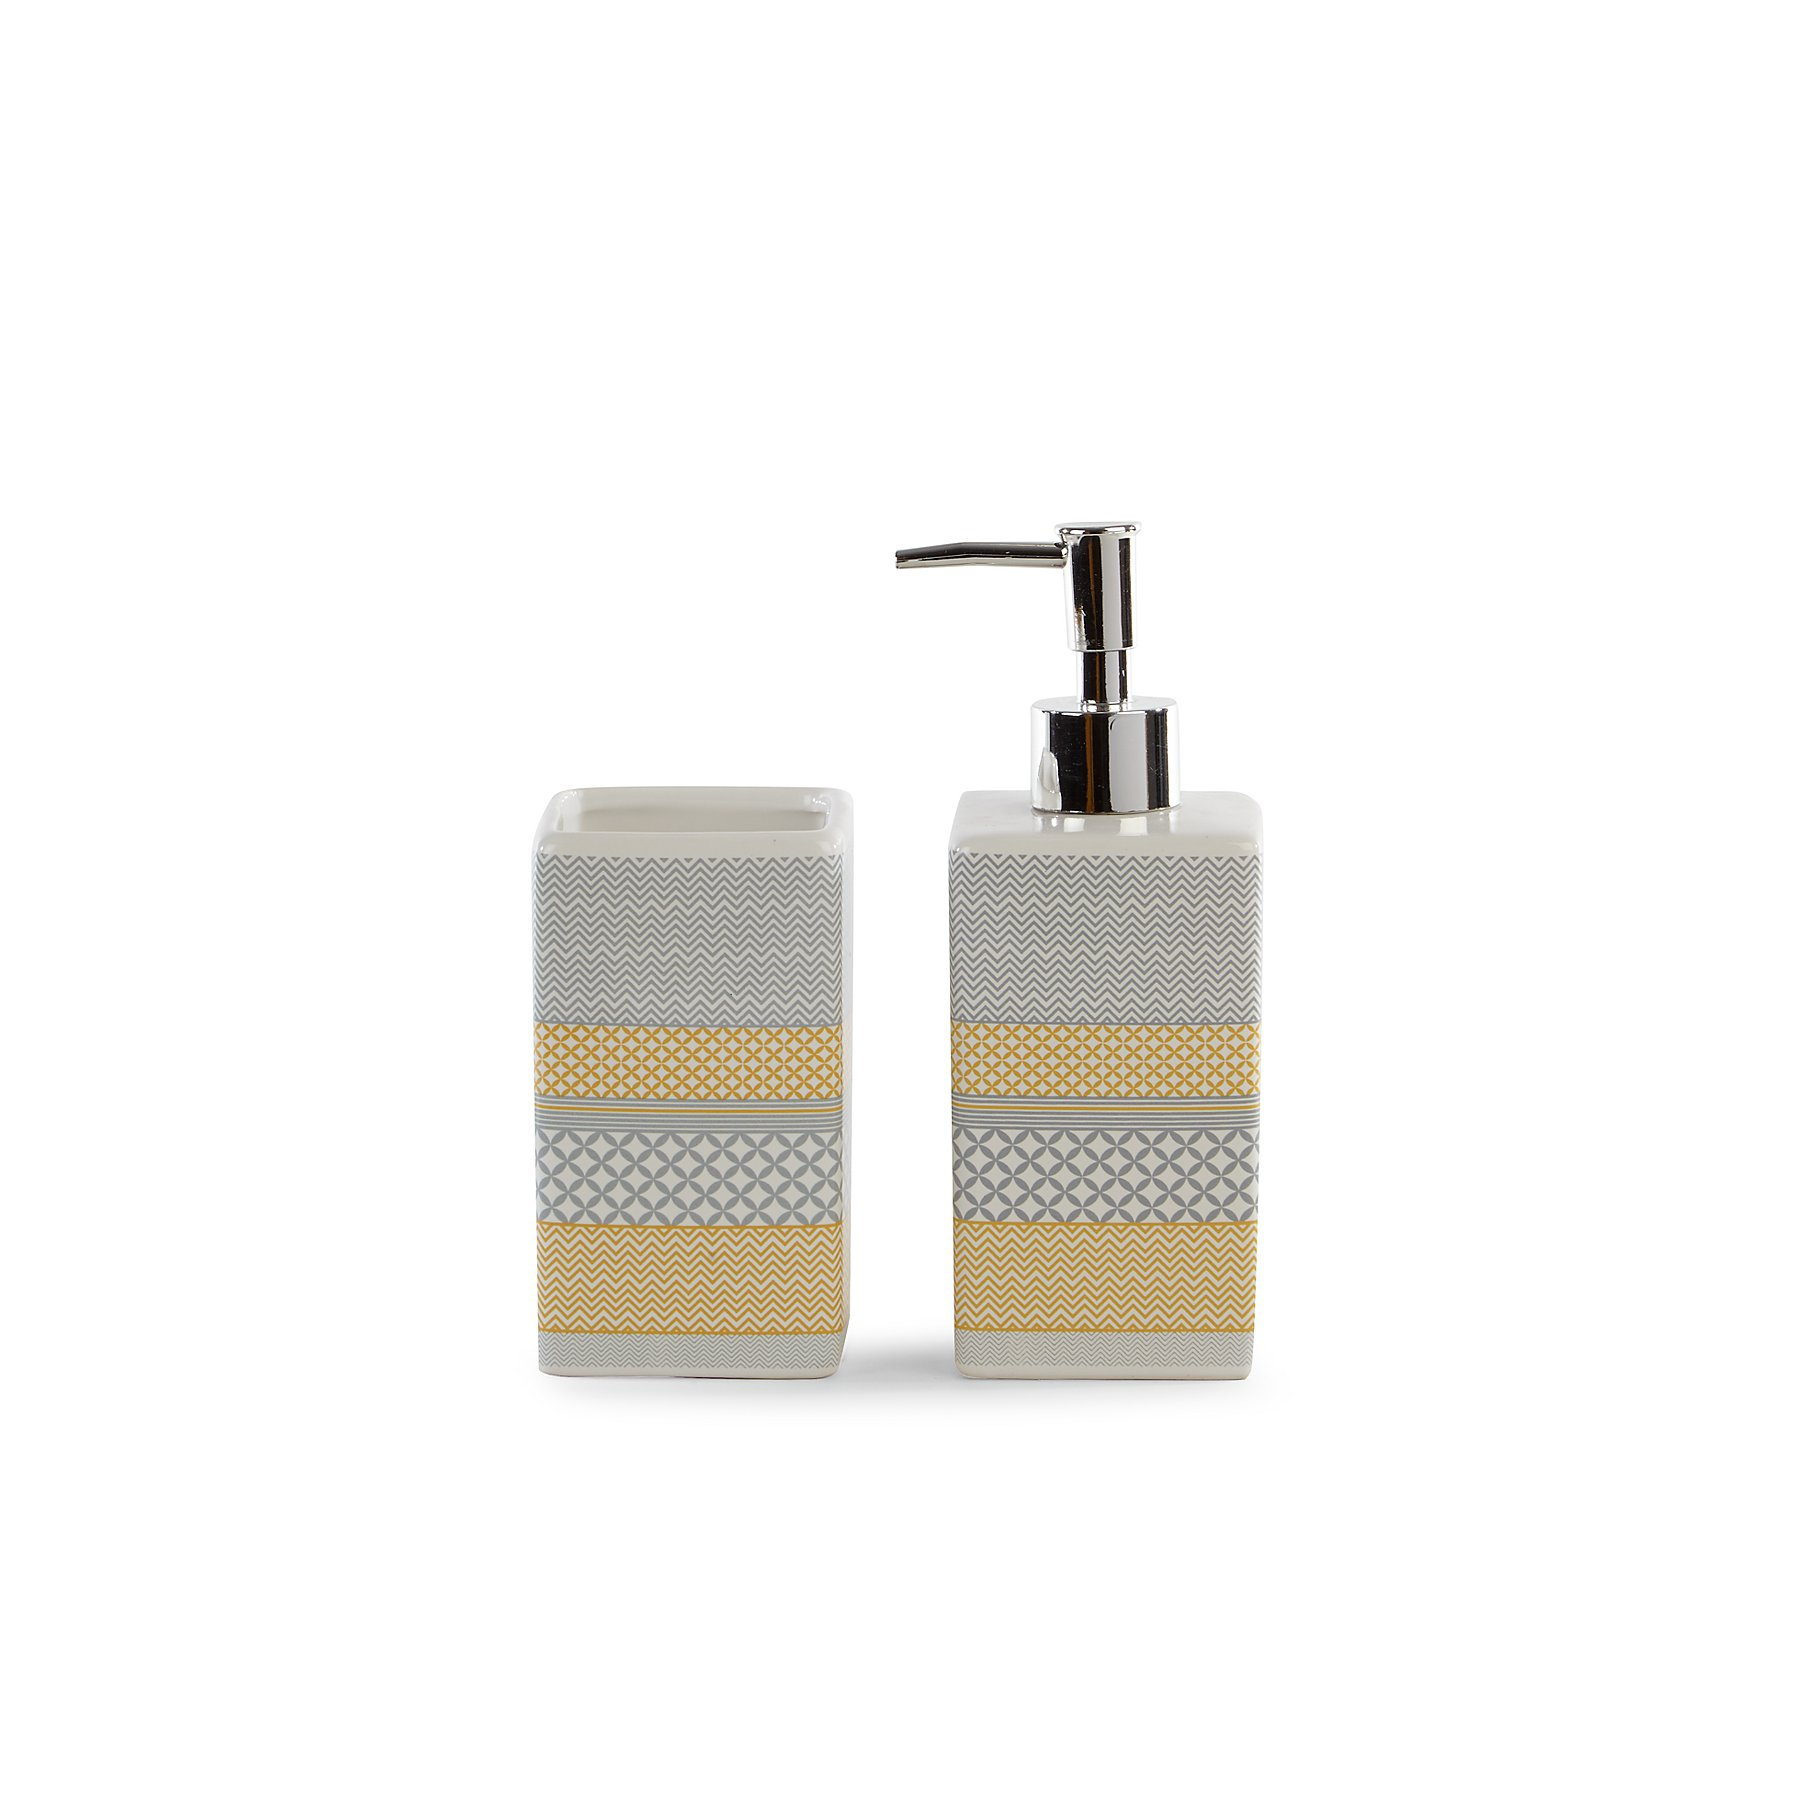 Grey And Yellow Striped Soap Dispenser And Tumbler Range Bathroom Accessories George At Asda